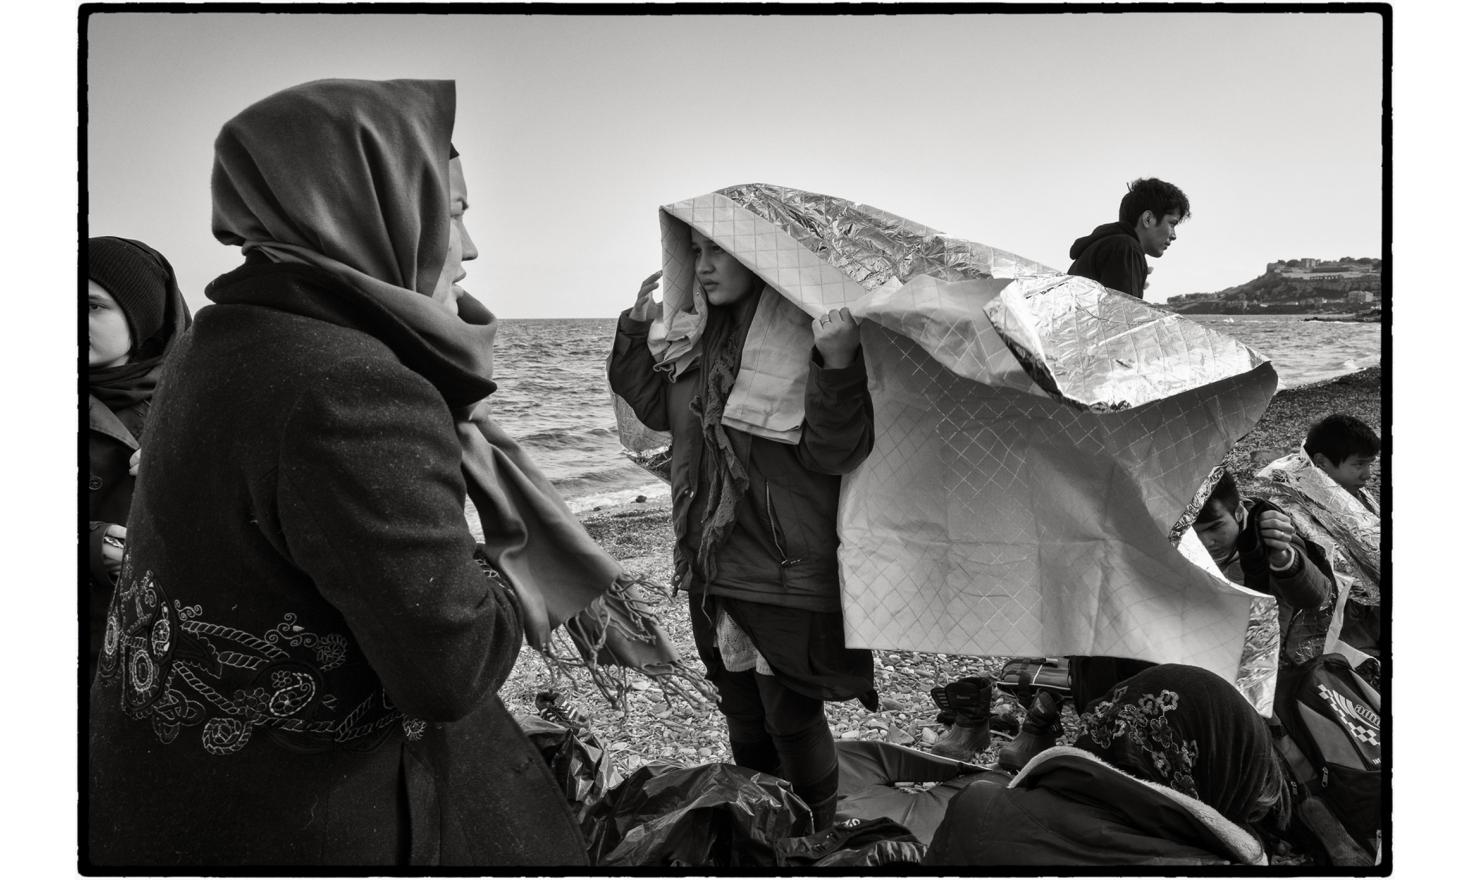 Lesbos, Greece. On their arrival they are met by volunteers from all over Europe, who help them disembark from the boats and hand out survival blankets, hot drinks, fruit and sweets.